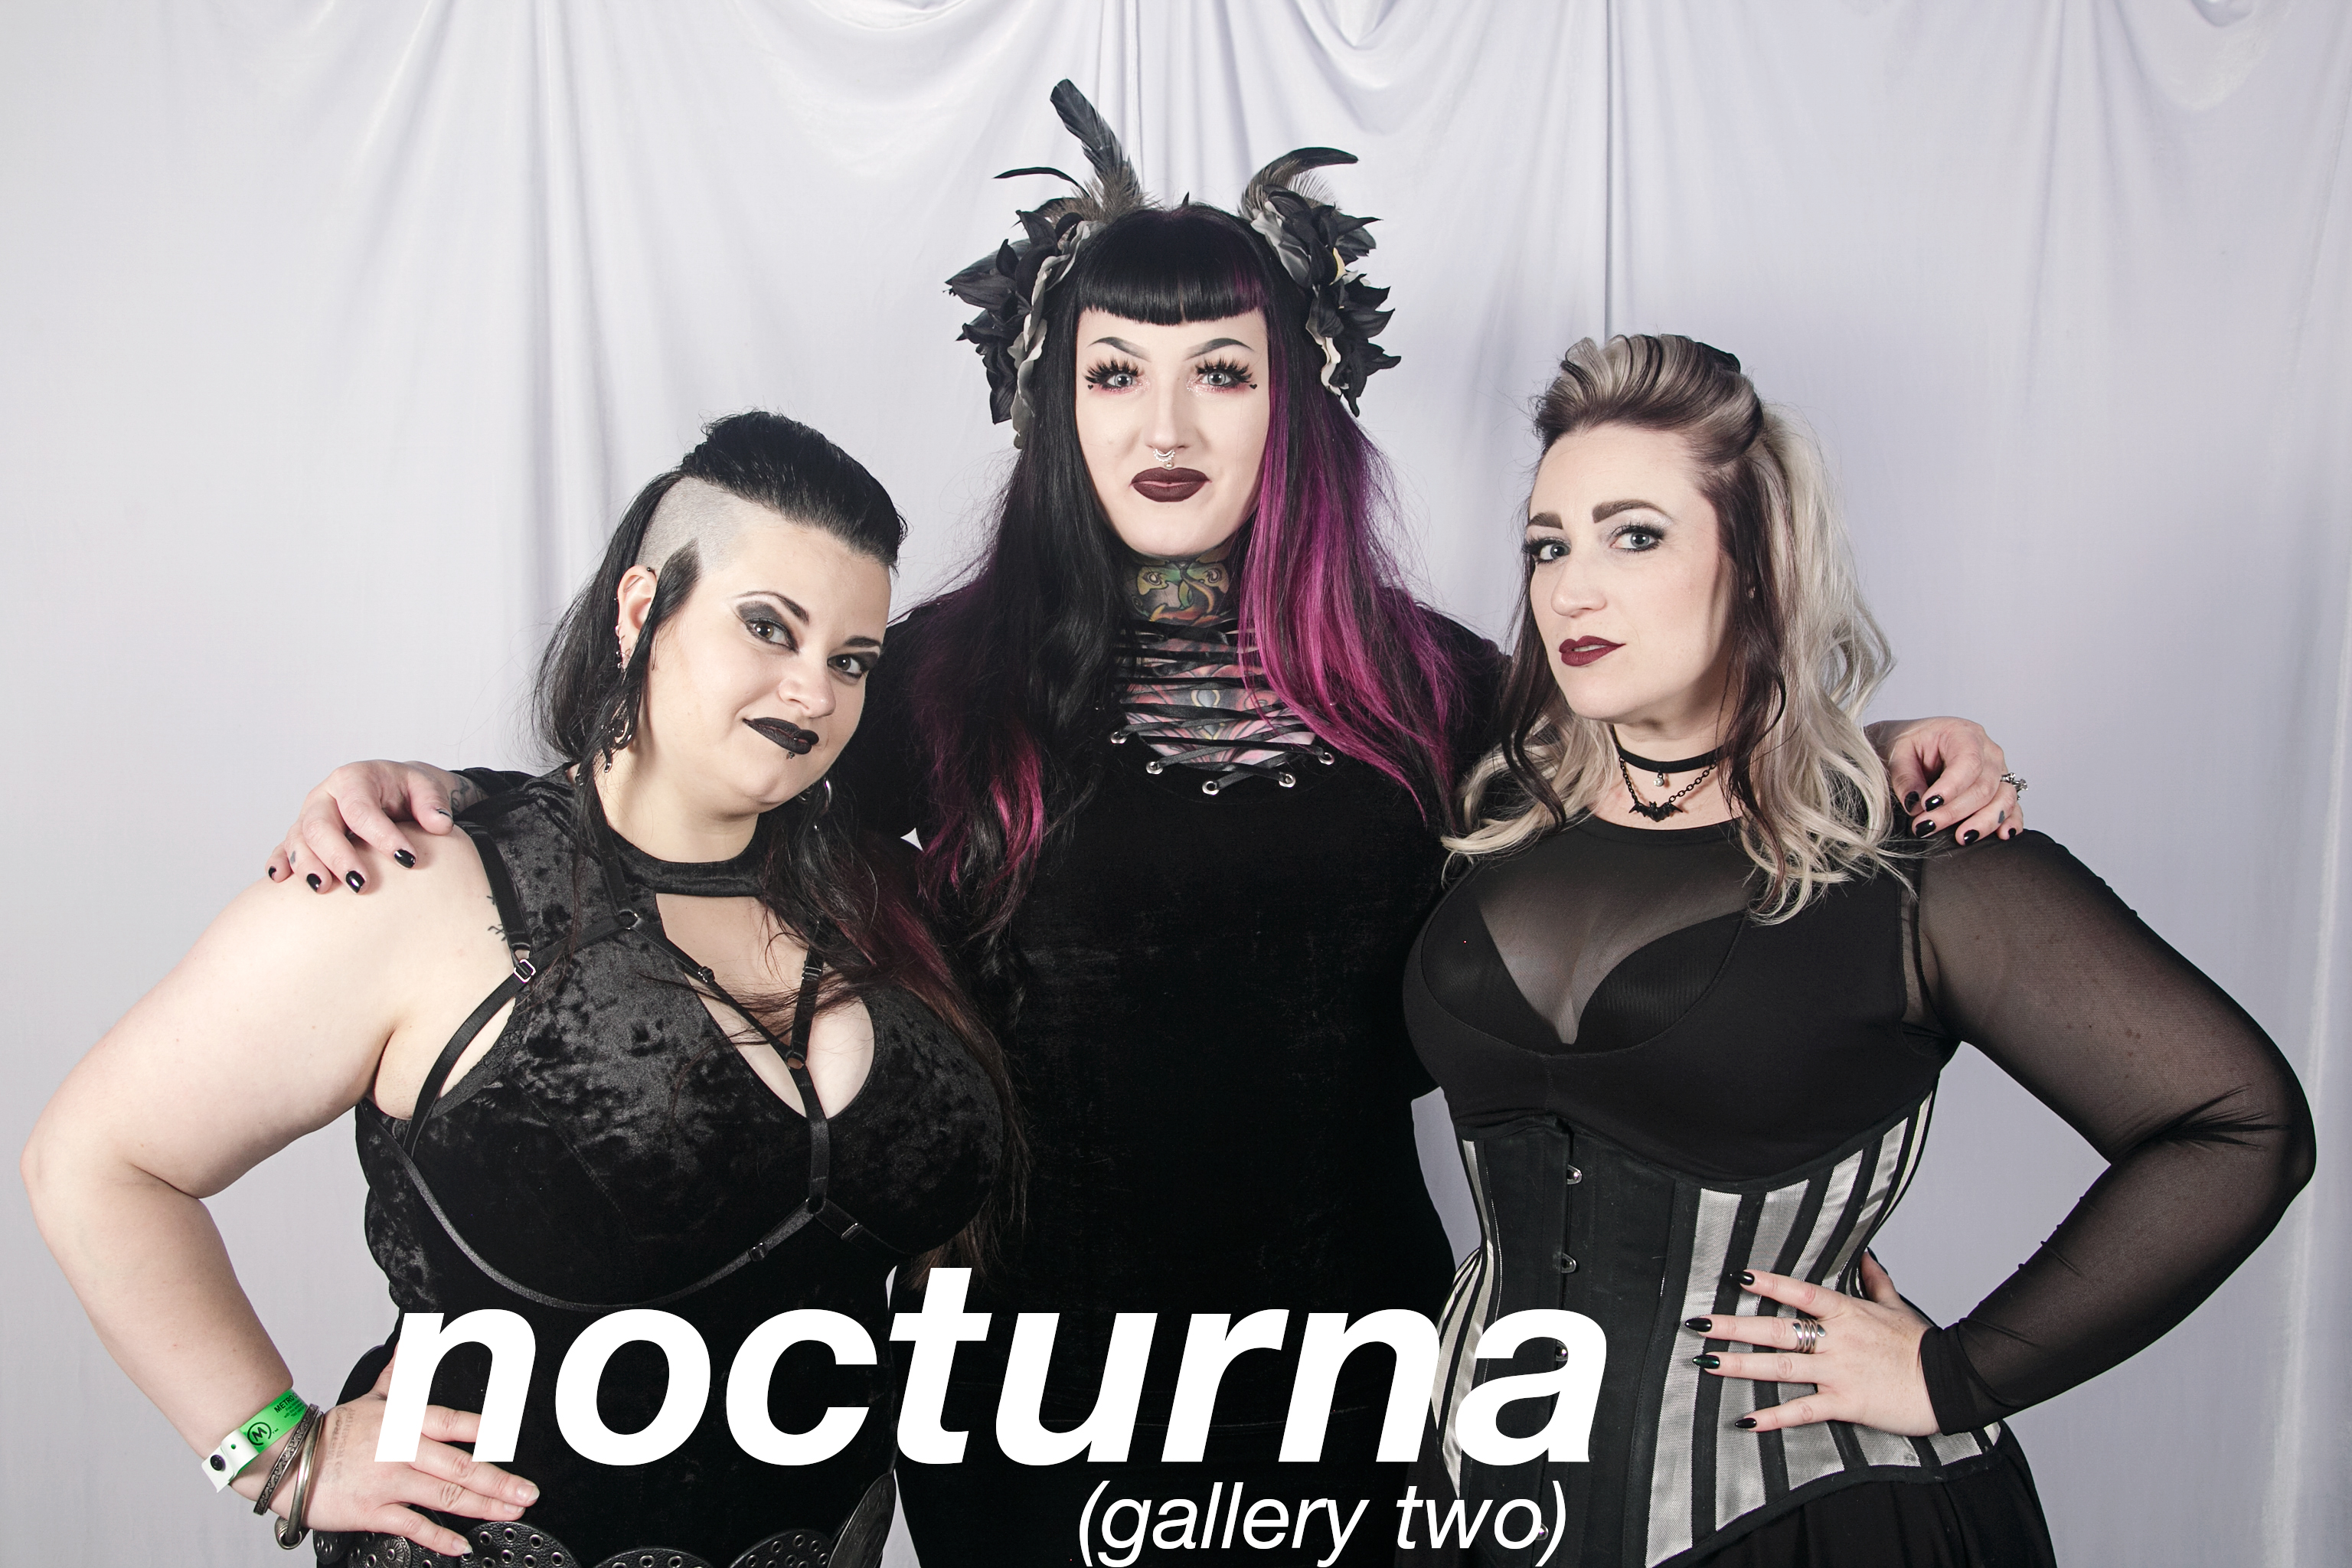 glitterguts photobooth portraits from nocturna at the metro, chicago 2018